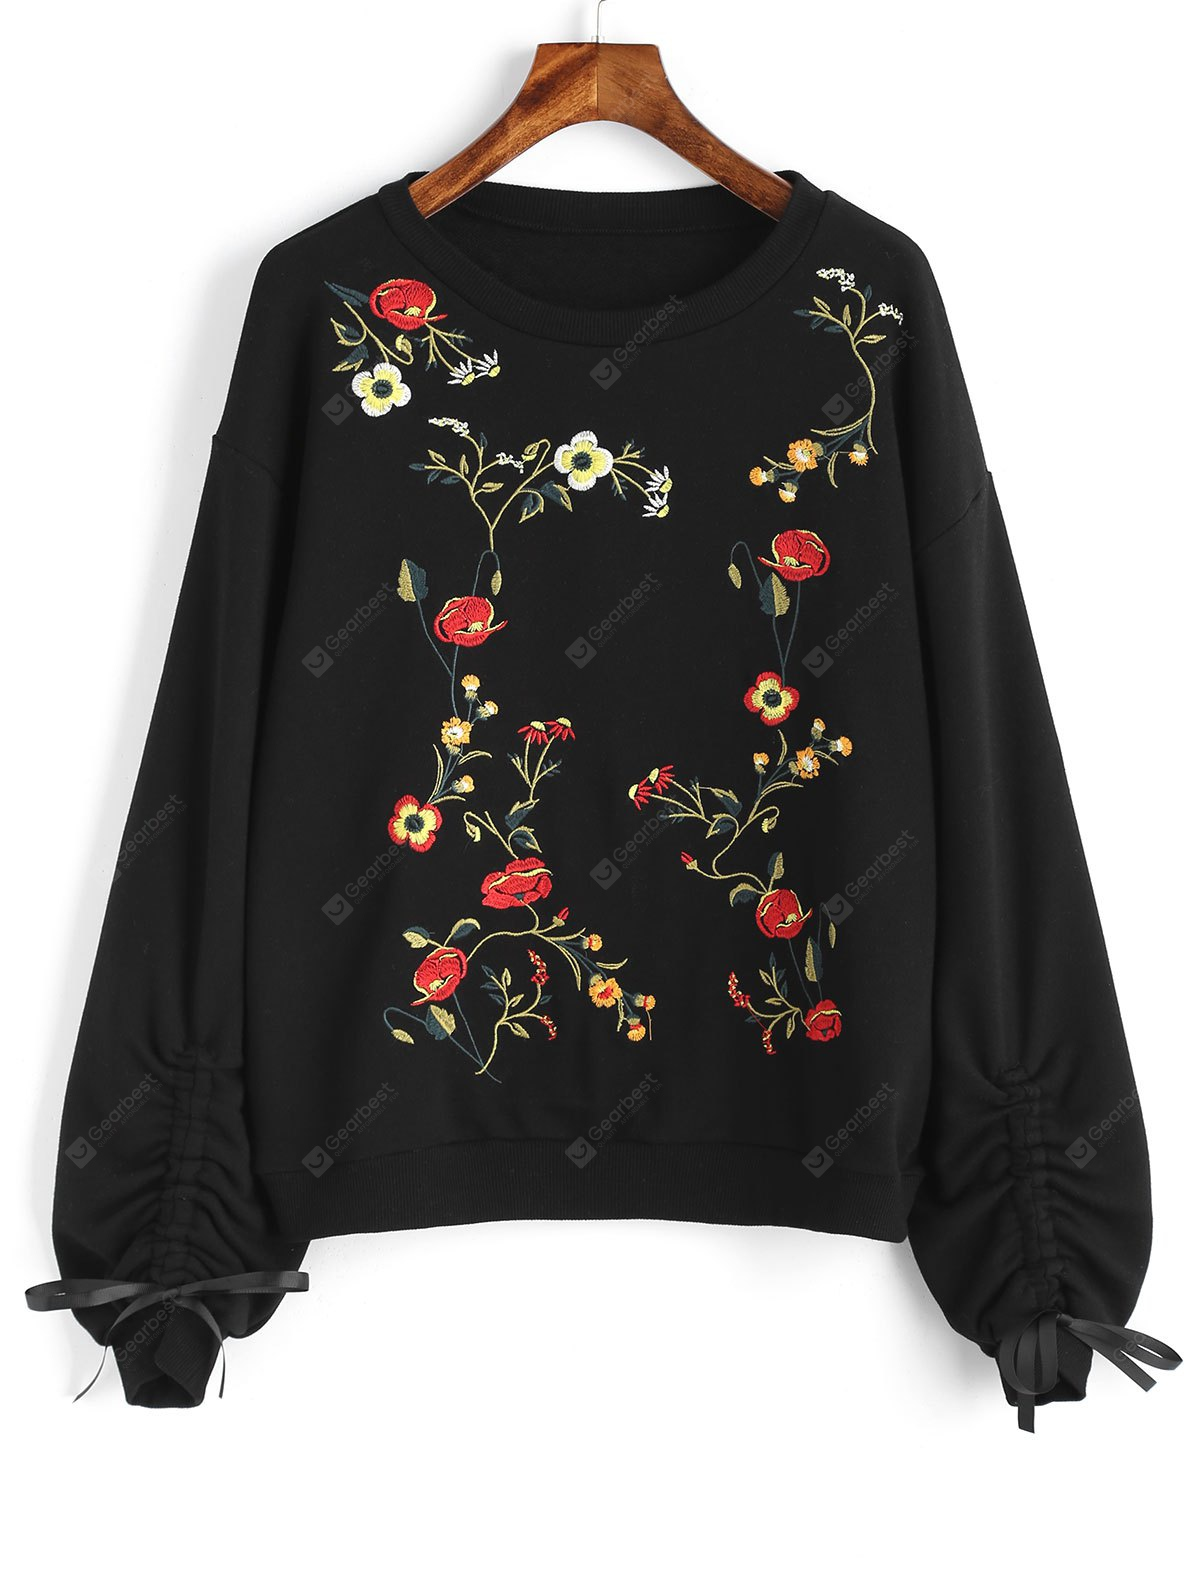 Floral Embroidered Cinched Sleeve Sweatshirt, BLACK, S, Apparel, Women's Clothing, Sweatshirts & Hoodies